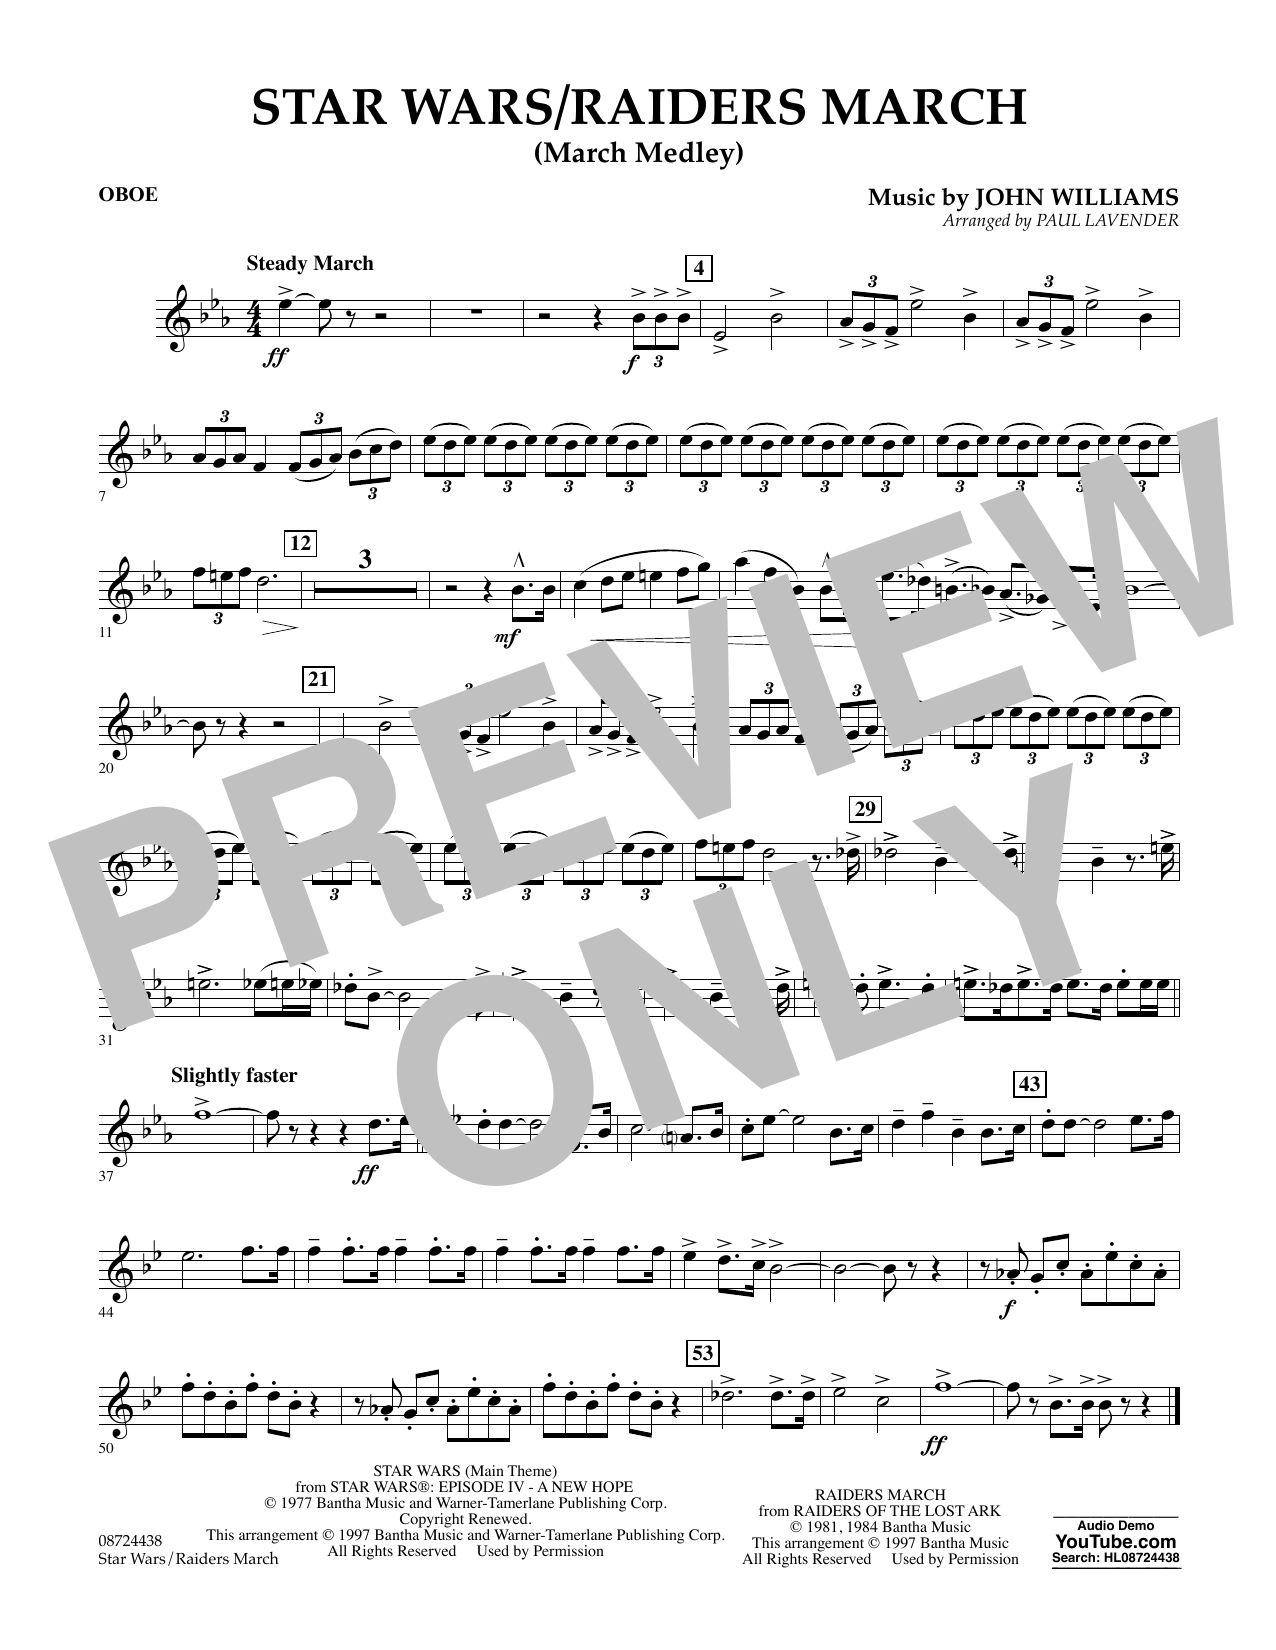 Star Wars/Raiders March - Oboe Sheet Music